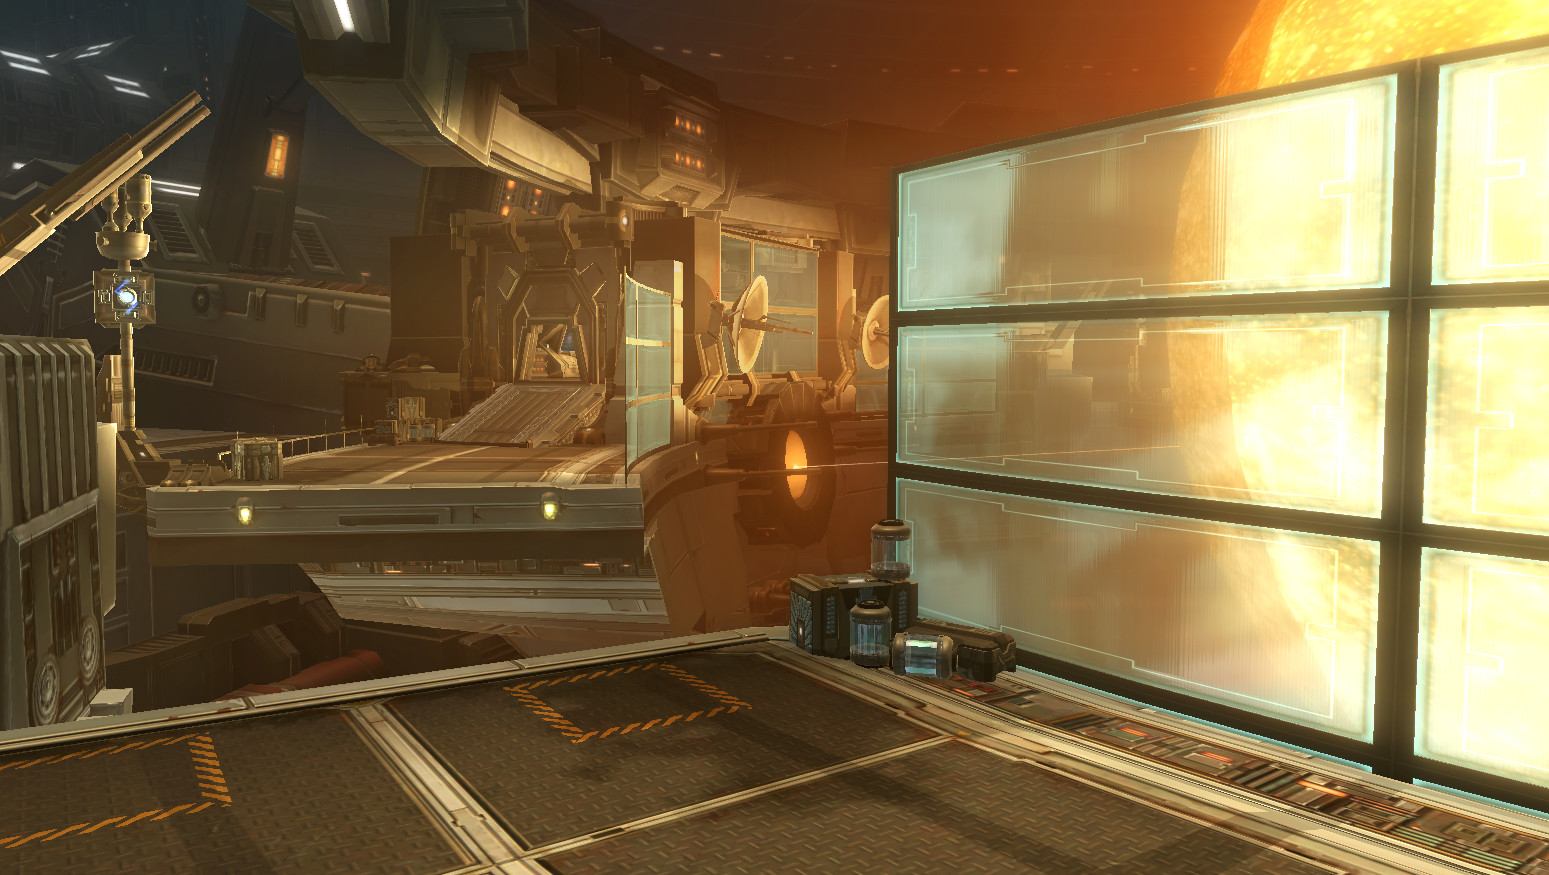 ArtStation - Star Wars: The Old Republic - Knights of the